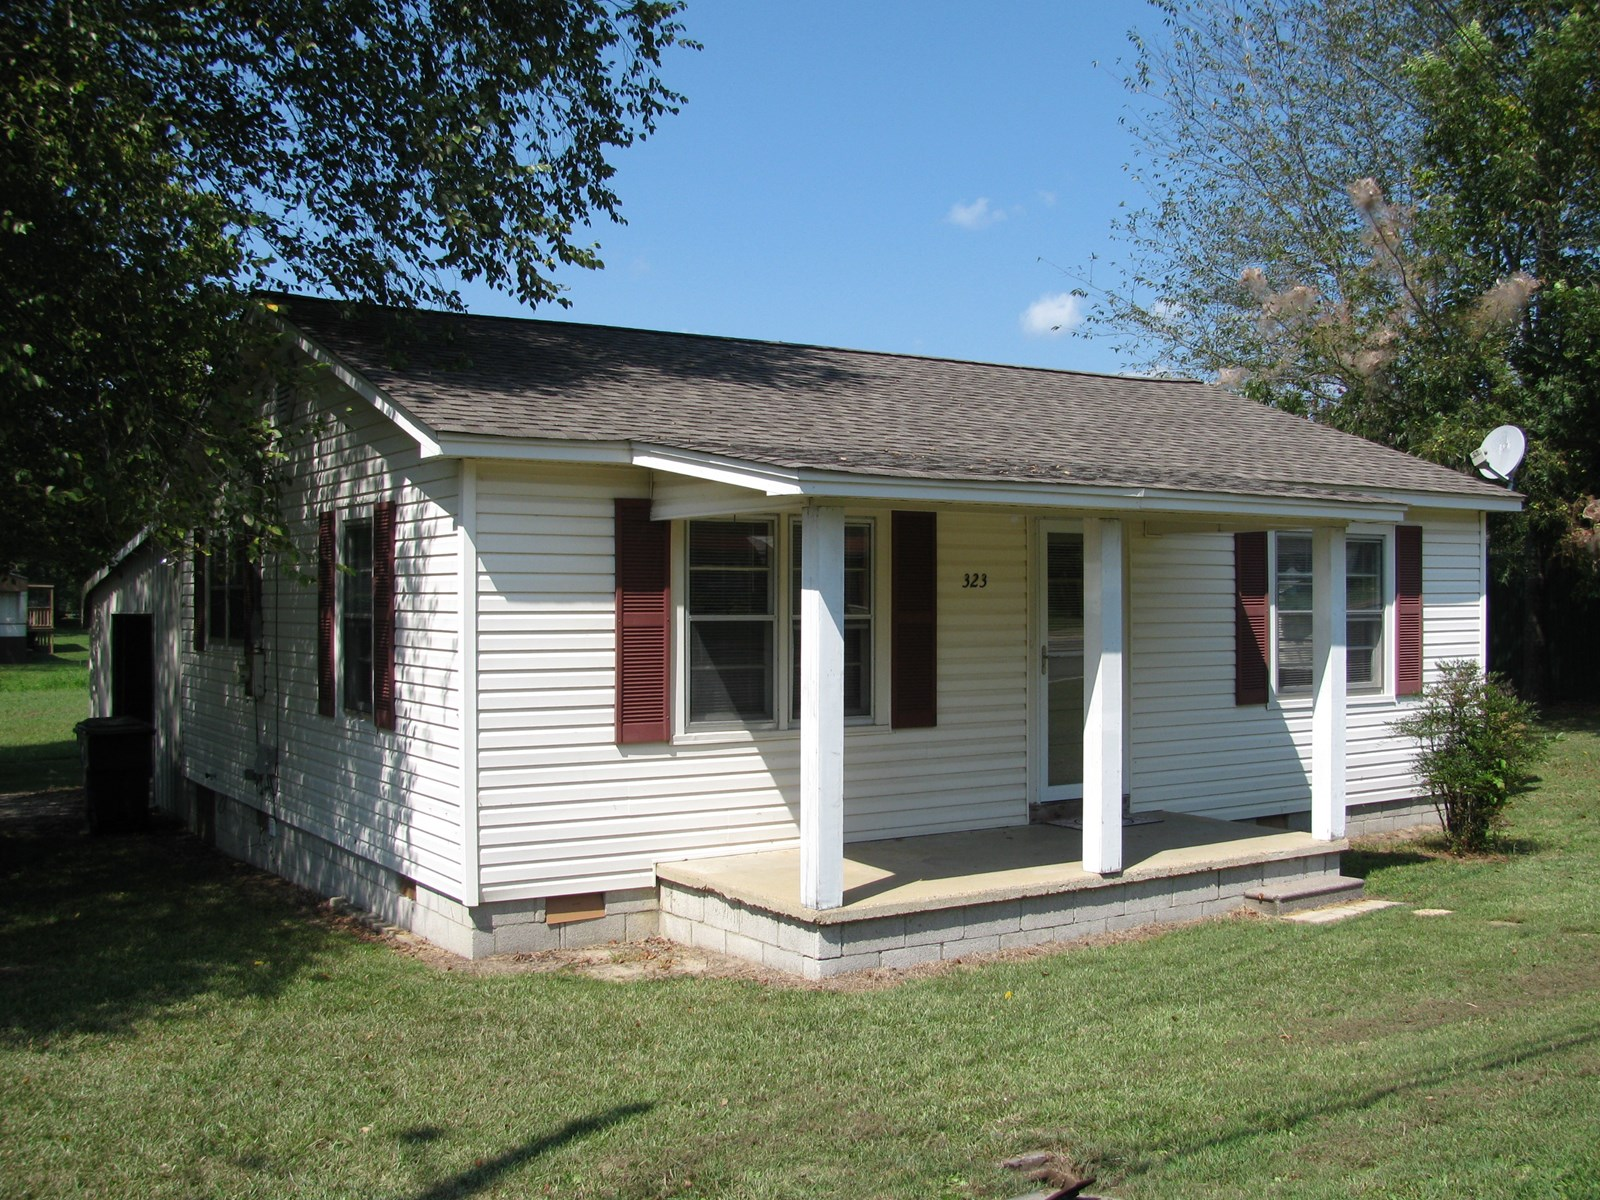 2 BEDROOM HOME FOR SALE IN ADAMSVILLE, TN MCNAIRY COUNTY